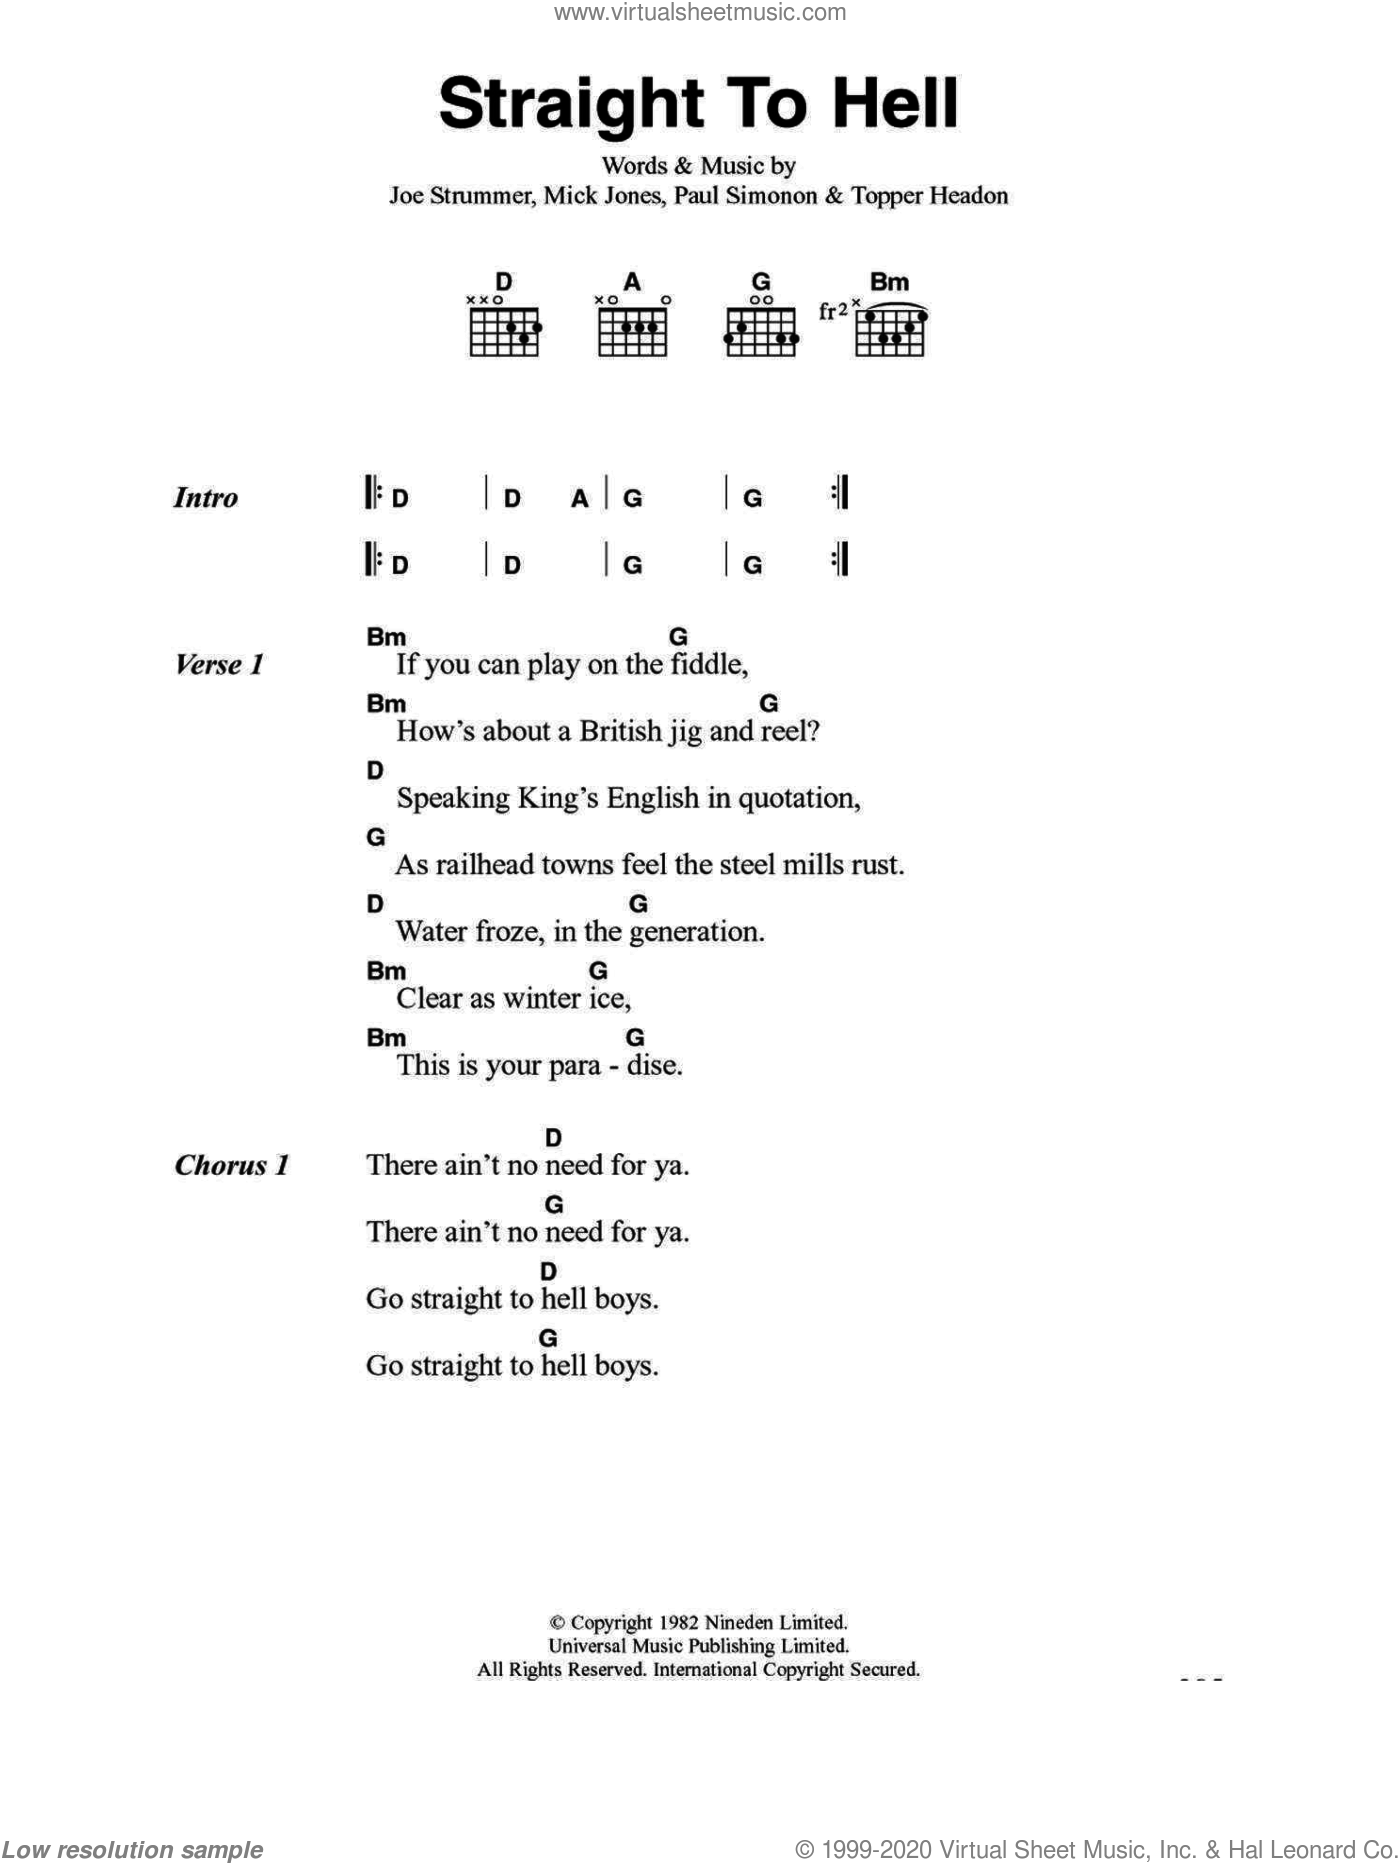 Straight To Hell sheet music for guitar (chords) by Joe Strummer, The Clash, Mick Jones, Paul Simonon and Topper Headon. Score Image Preview.